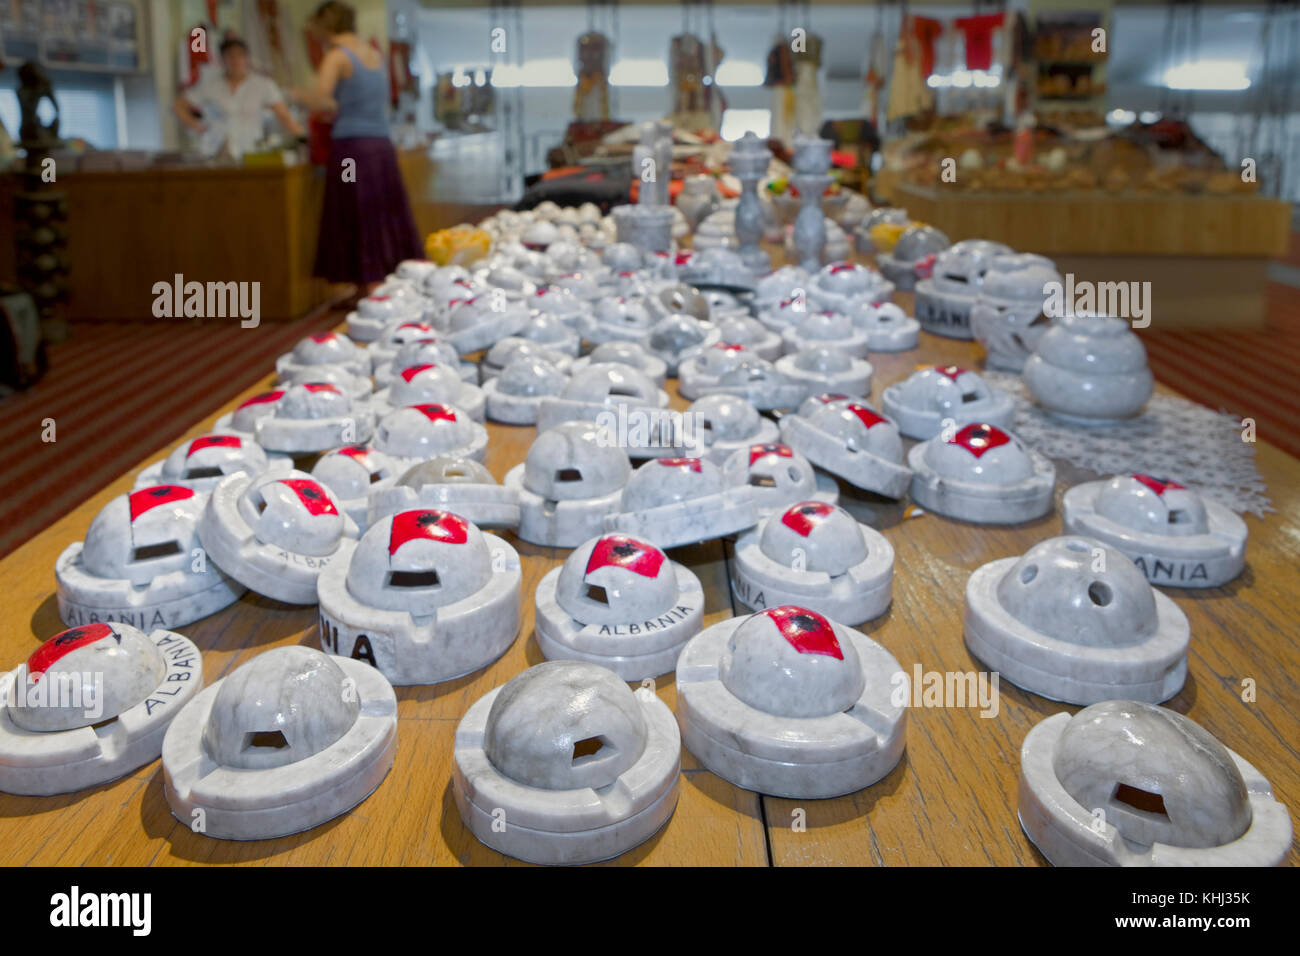 Bunker ashtrays for sale in the souvenir shop of the National Museum, Tirane, Albania. - Stock Image